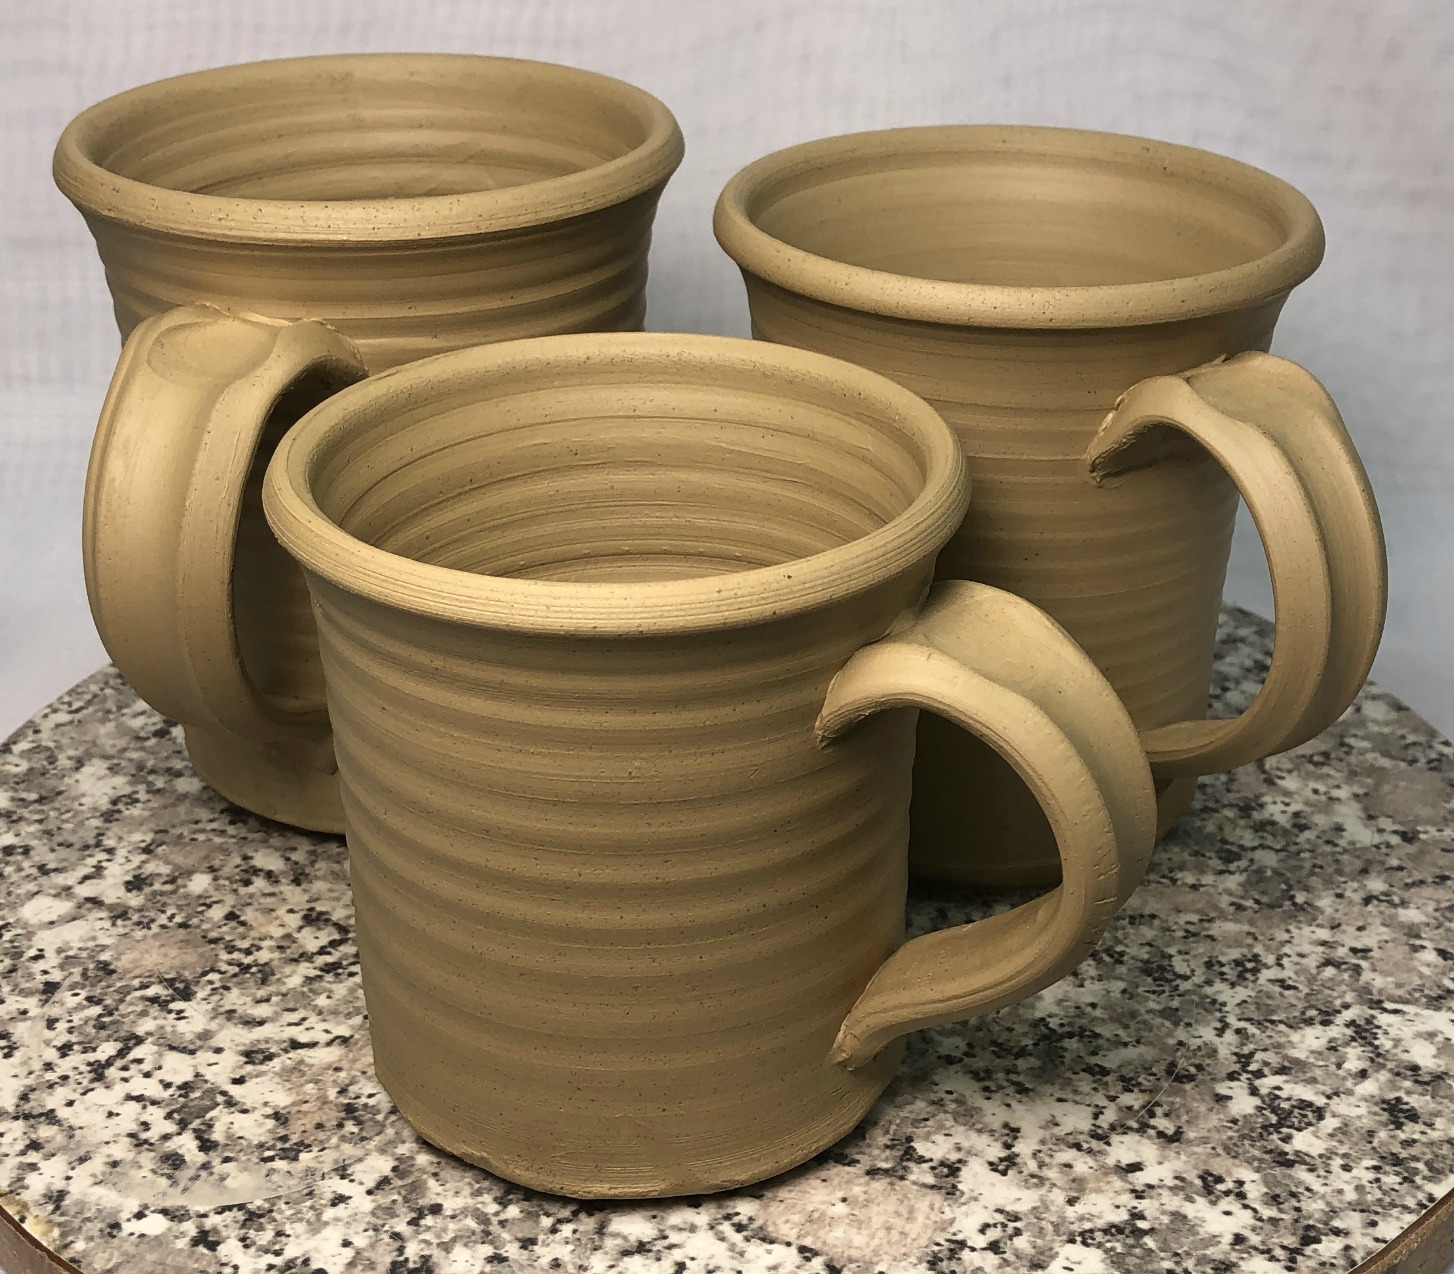 Two freshly thrown mugs made from pure Lincoln 60 fireclay